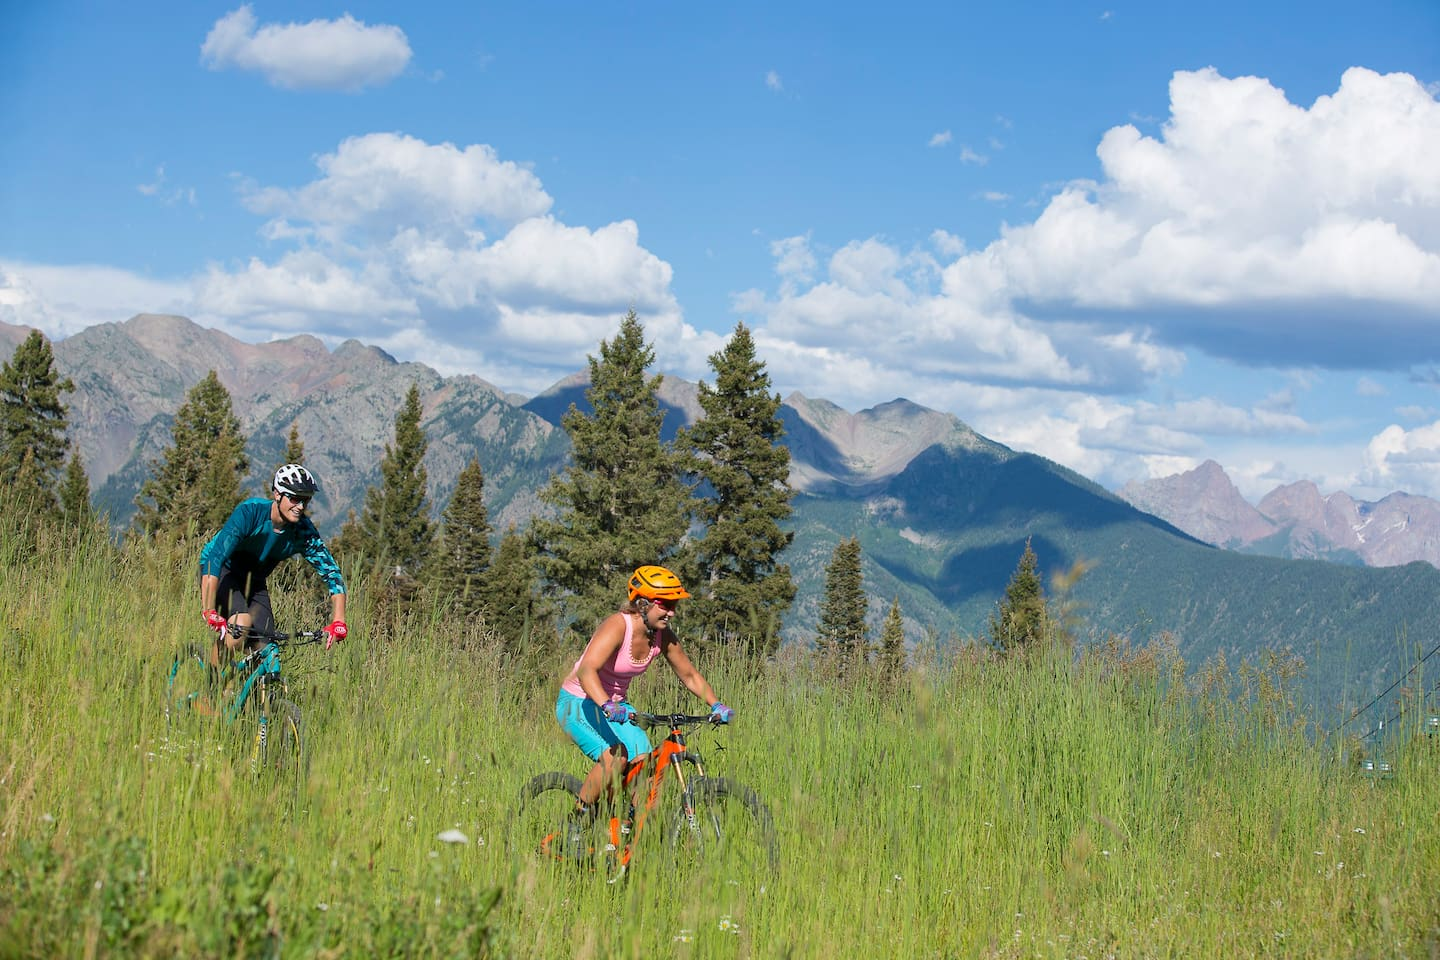 Purgatory Mtn has a comprehensive network of summer hiking and mountain biking trails.